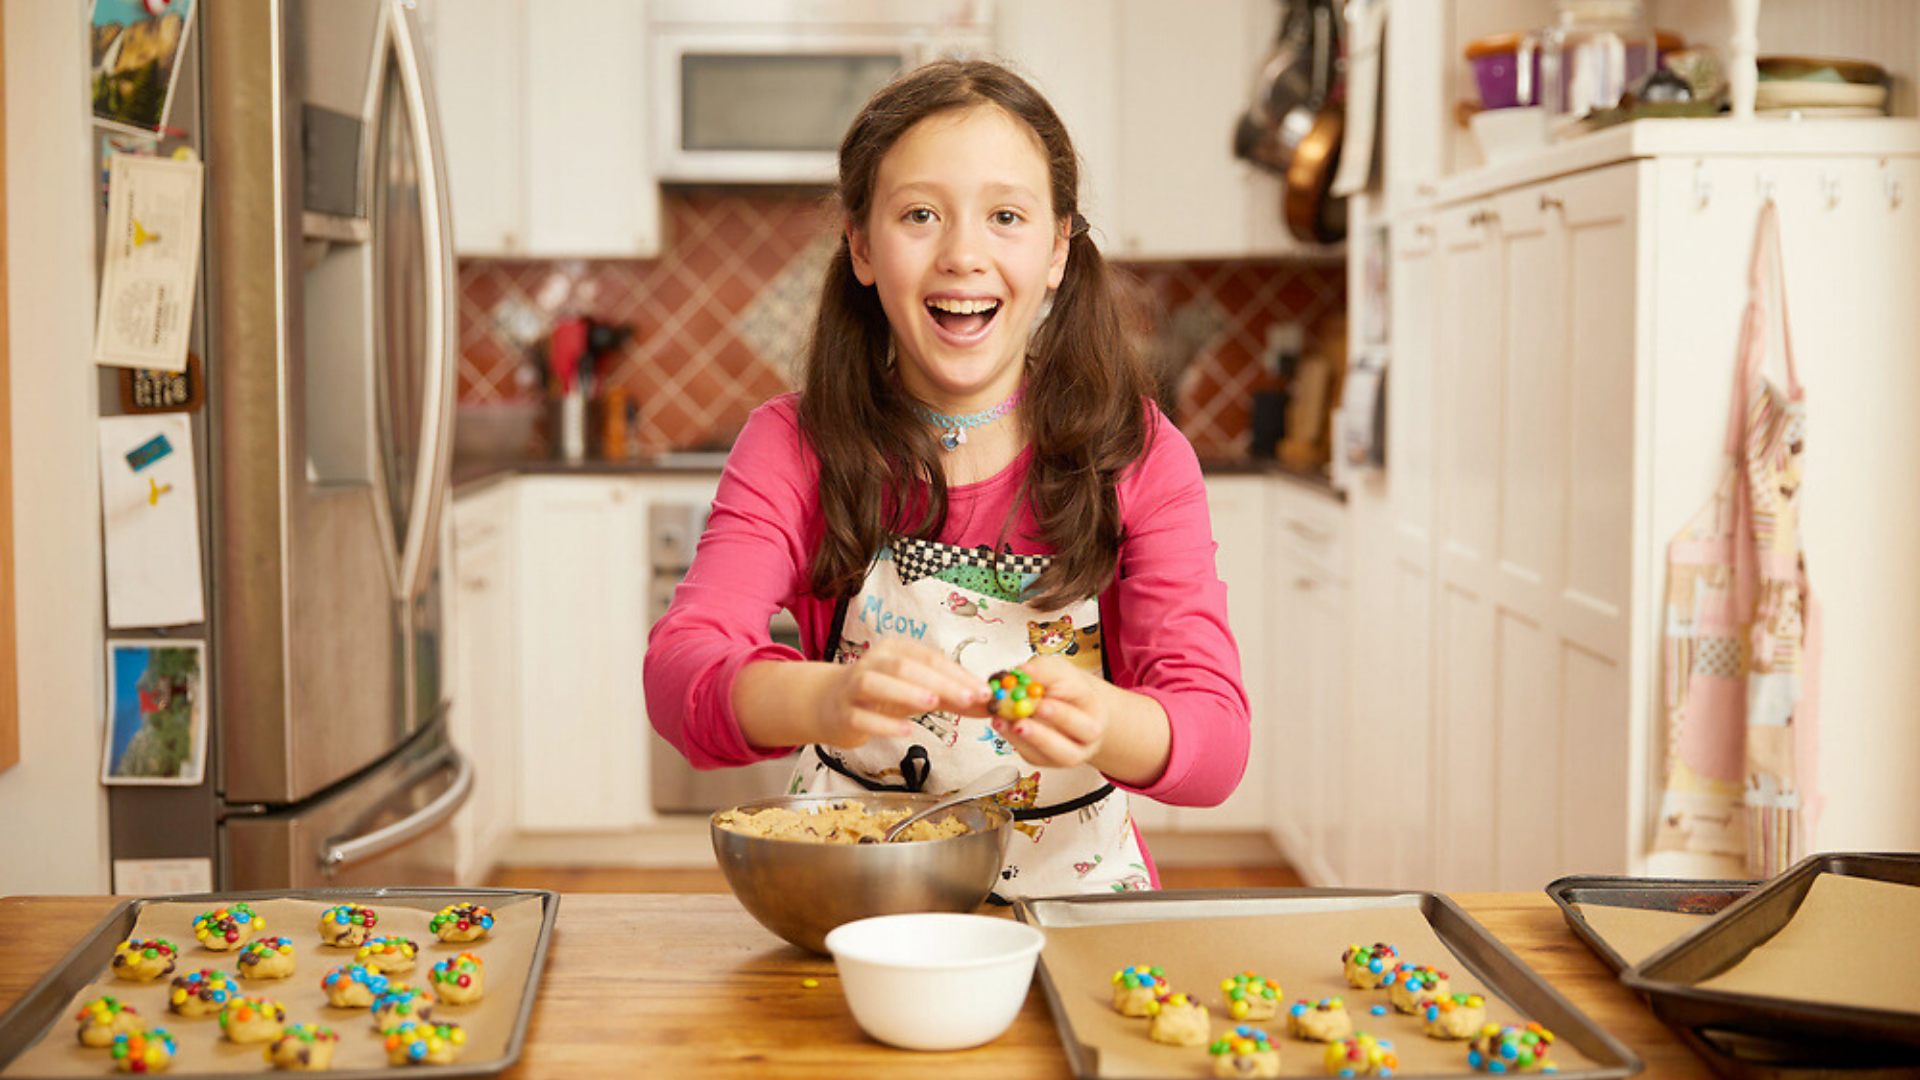 Dana Perella, founder of Cookies4Cures